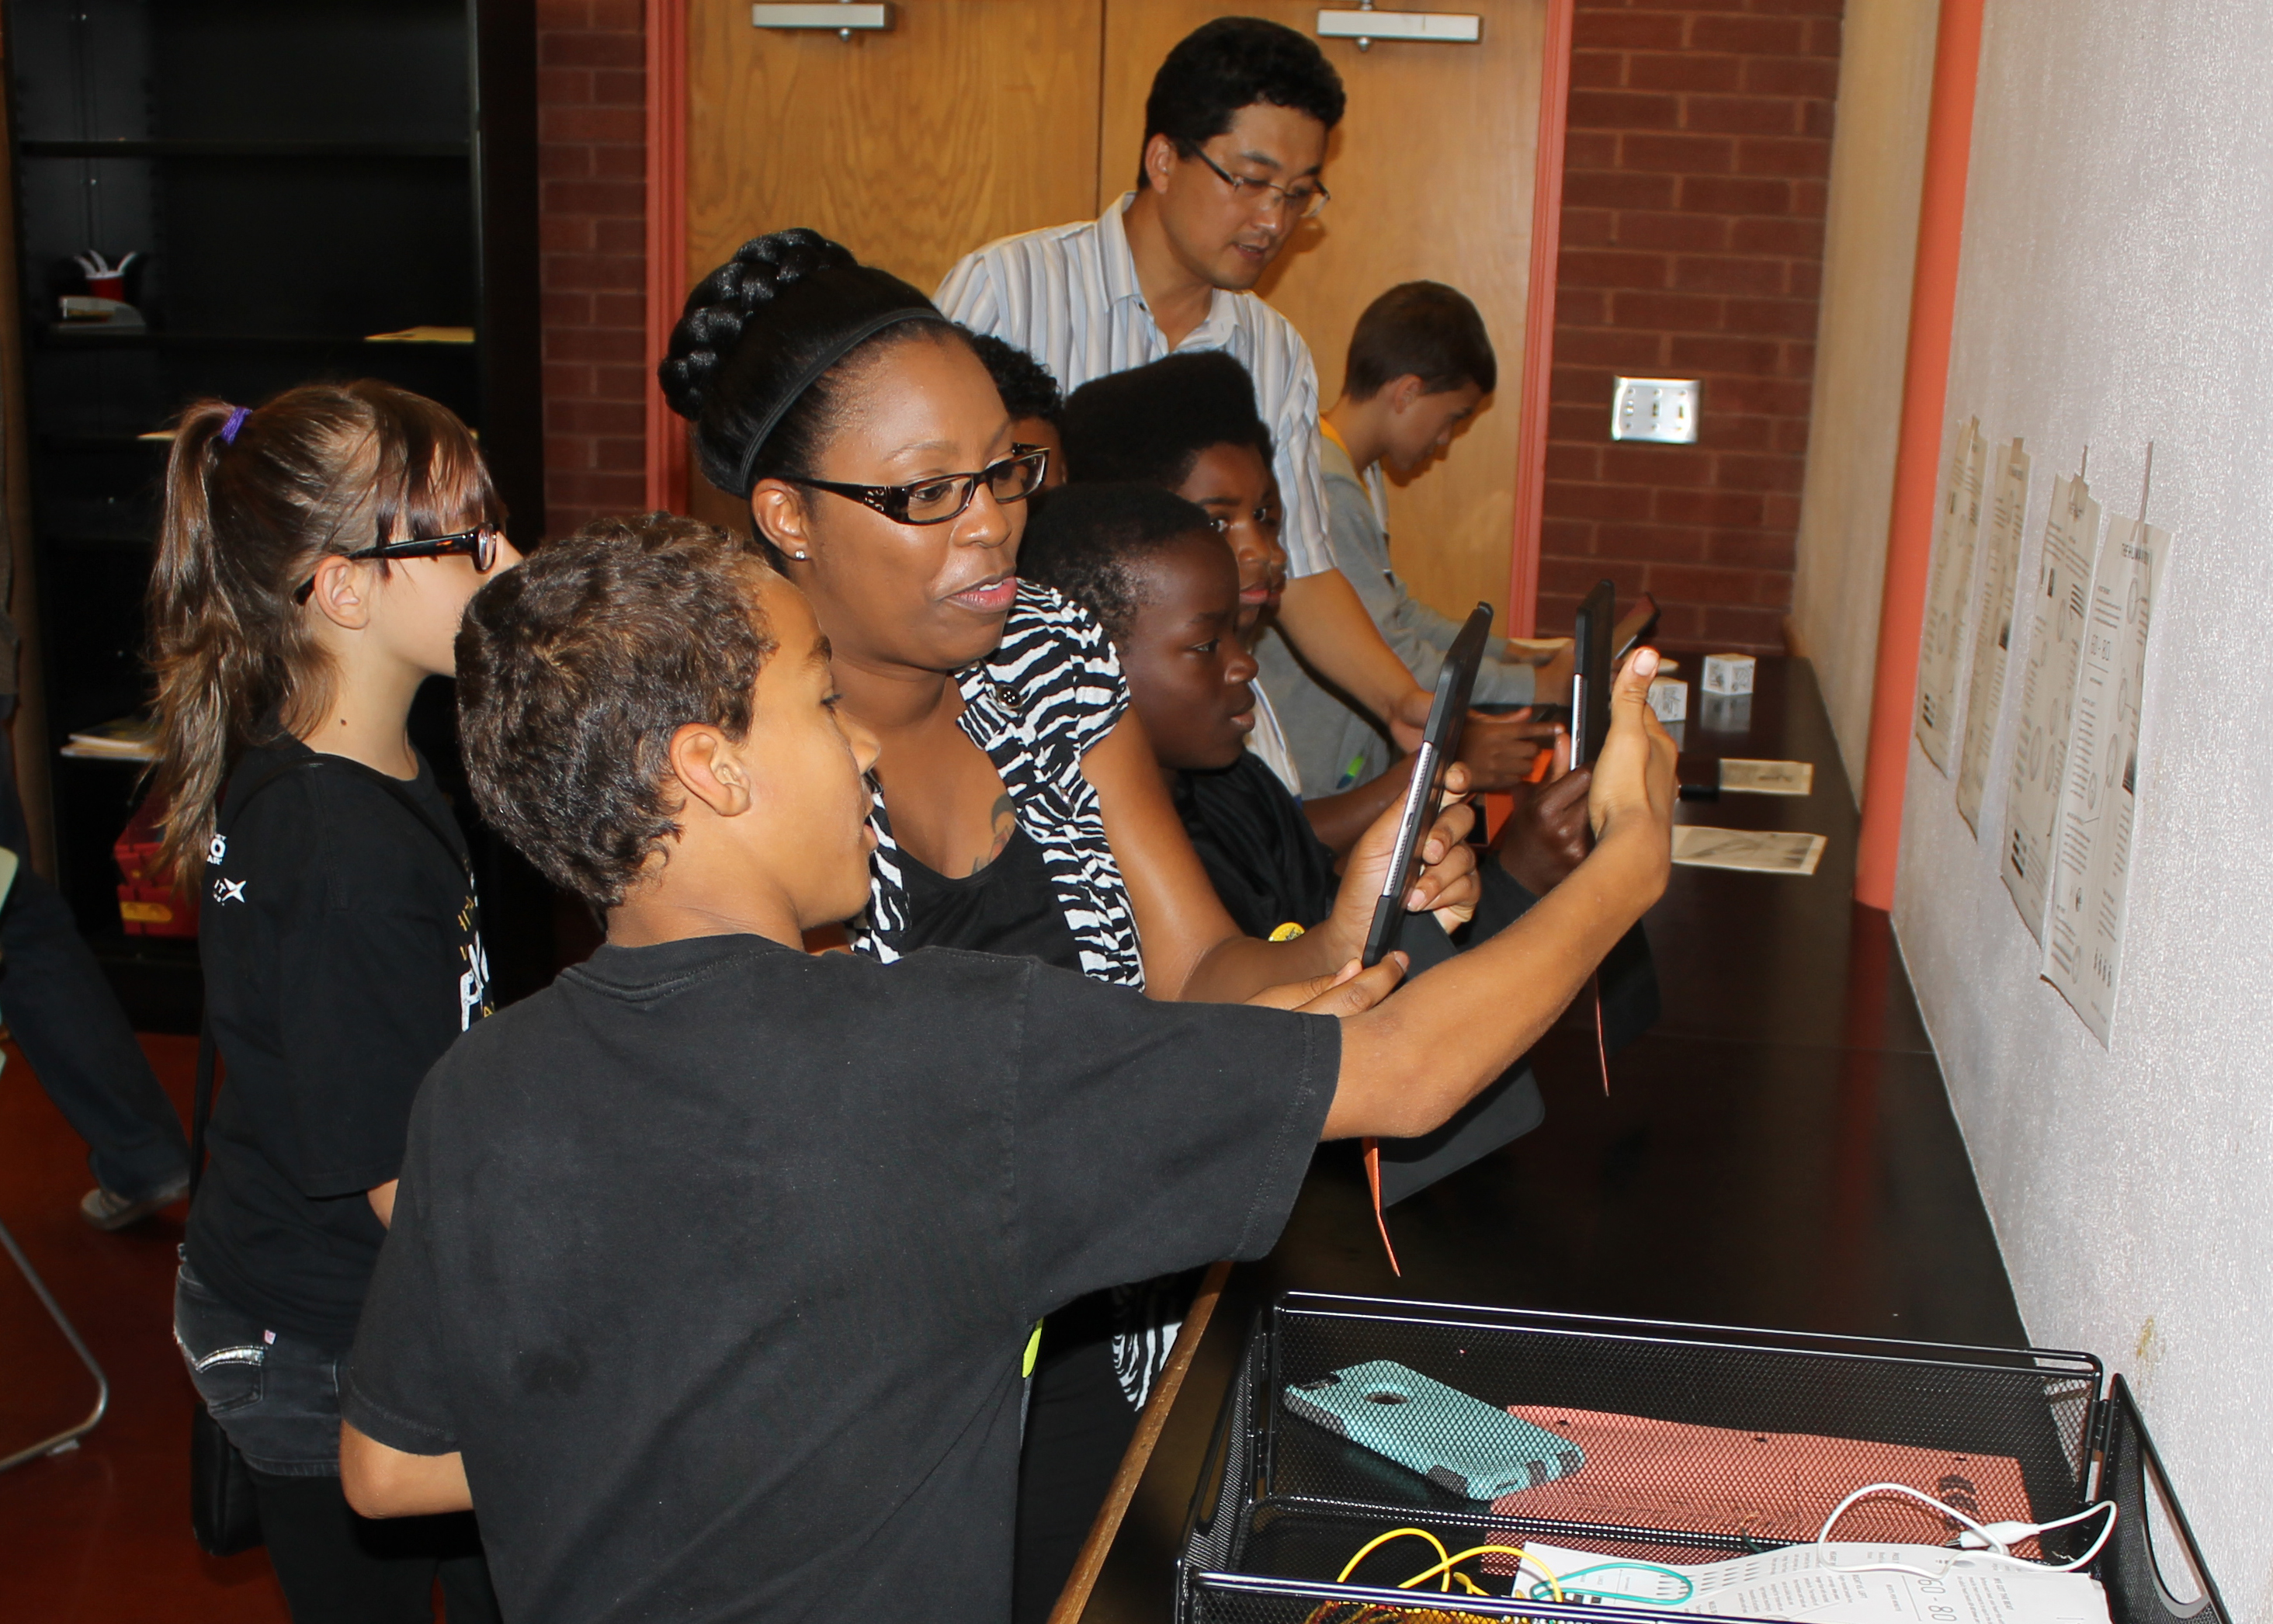 Students and a teacher look through a device.